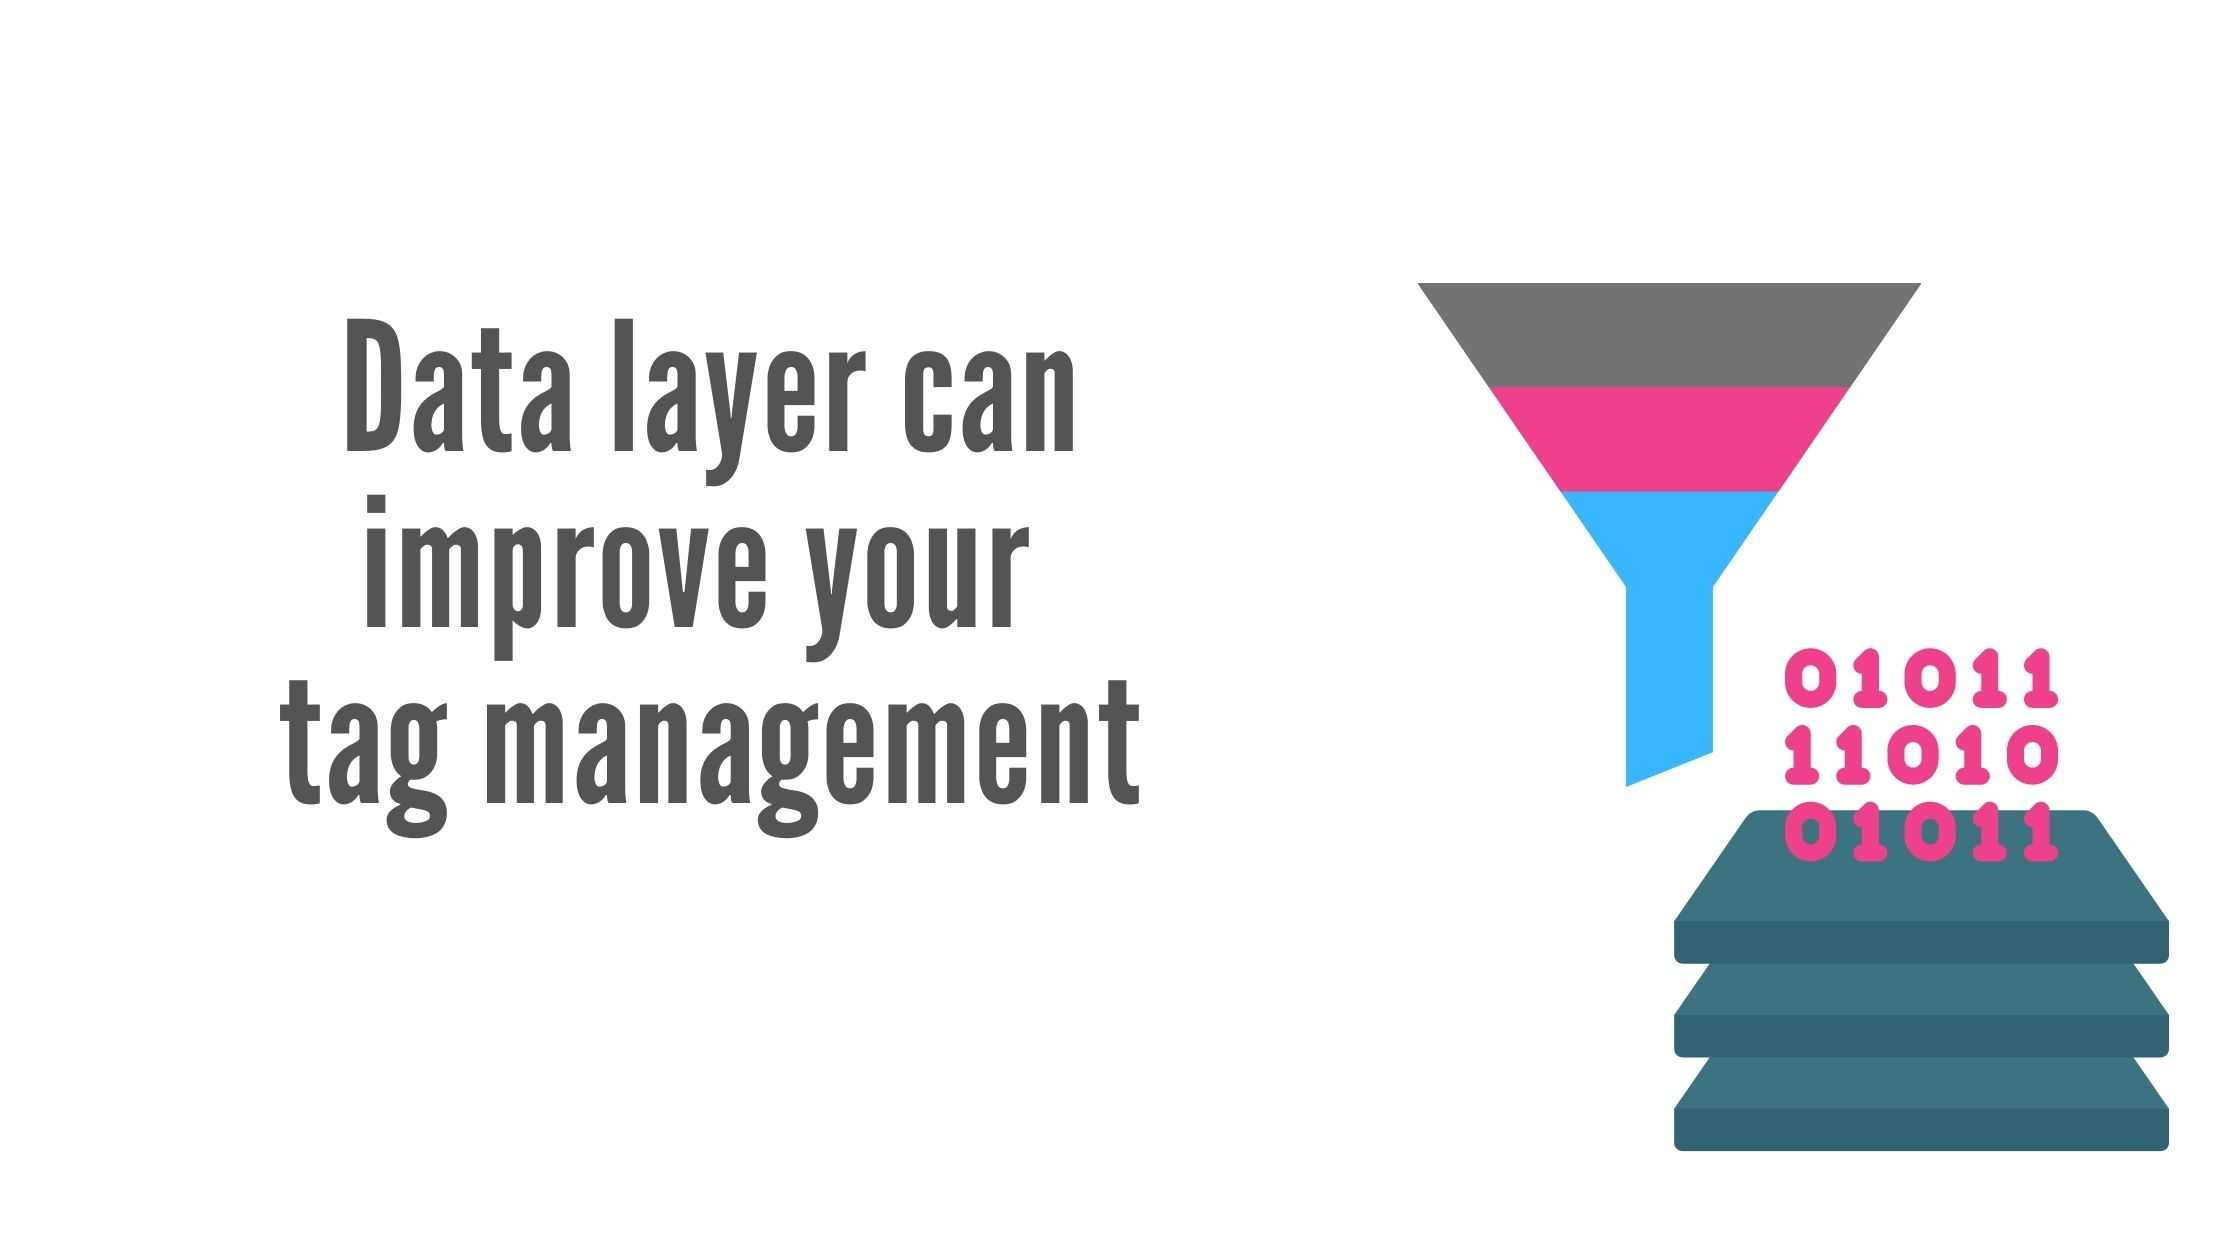 Implement tags in minutes on your server-side tag manager with a Data layer